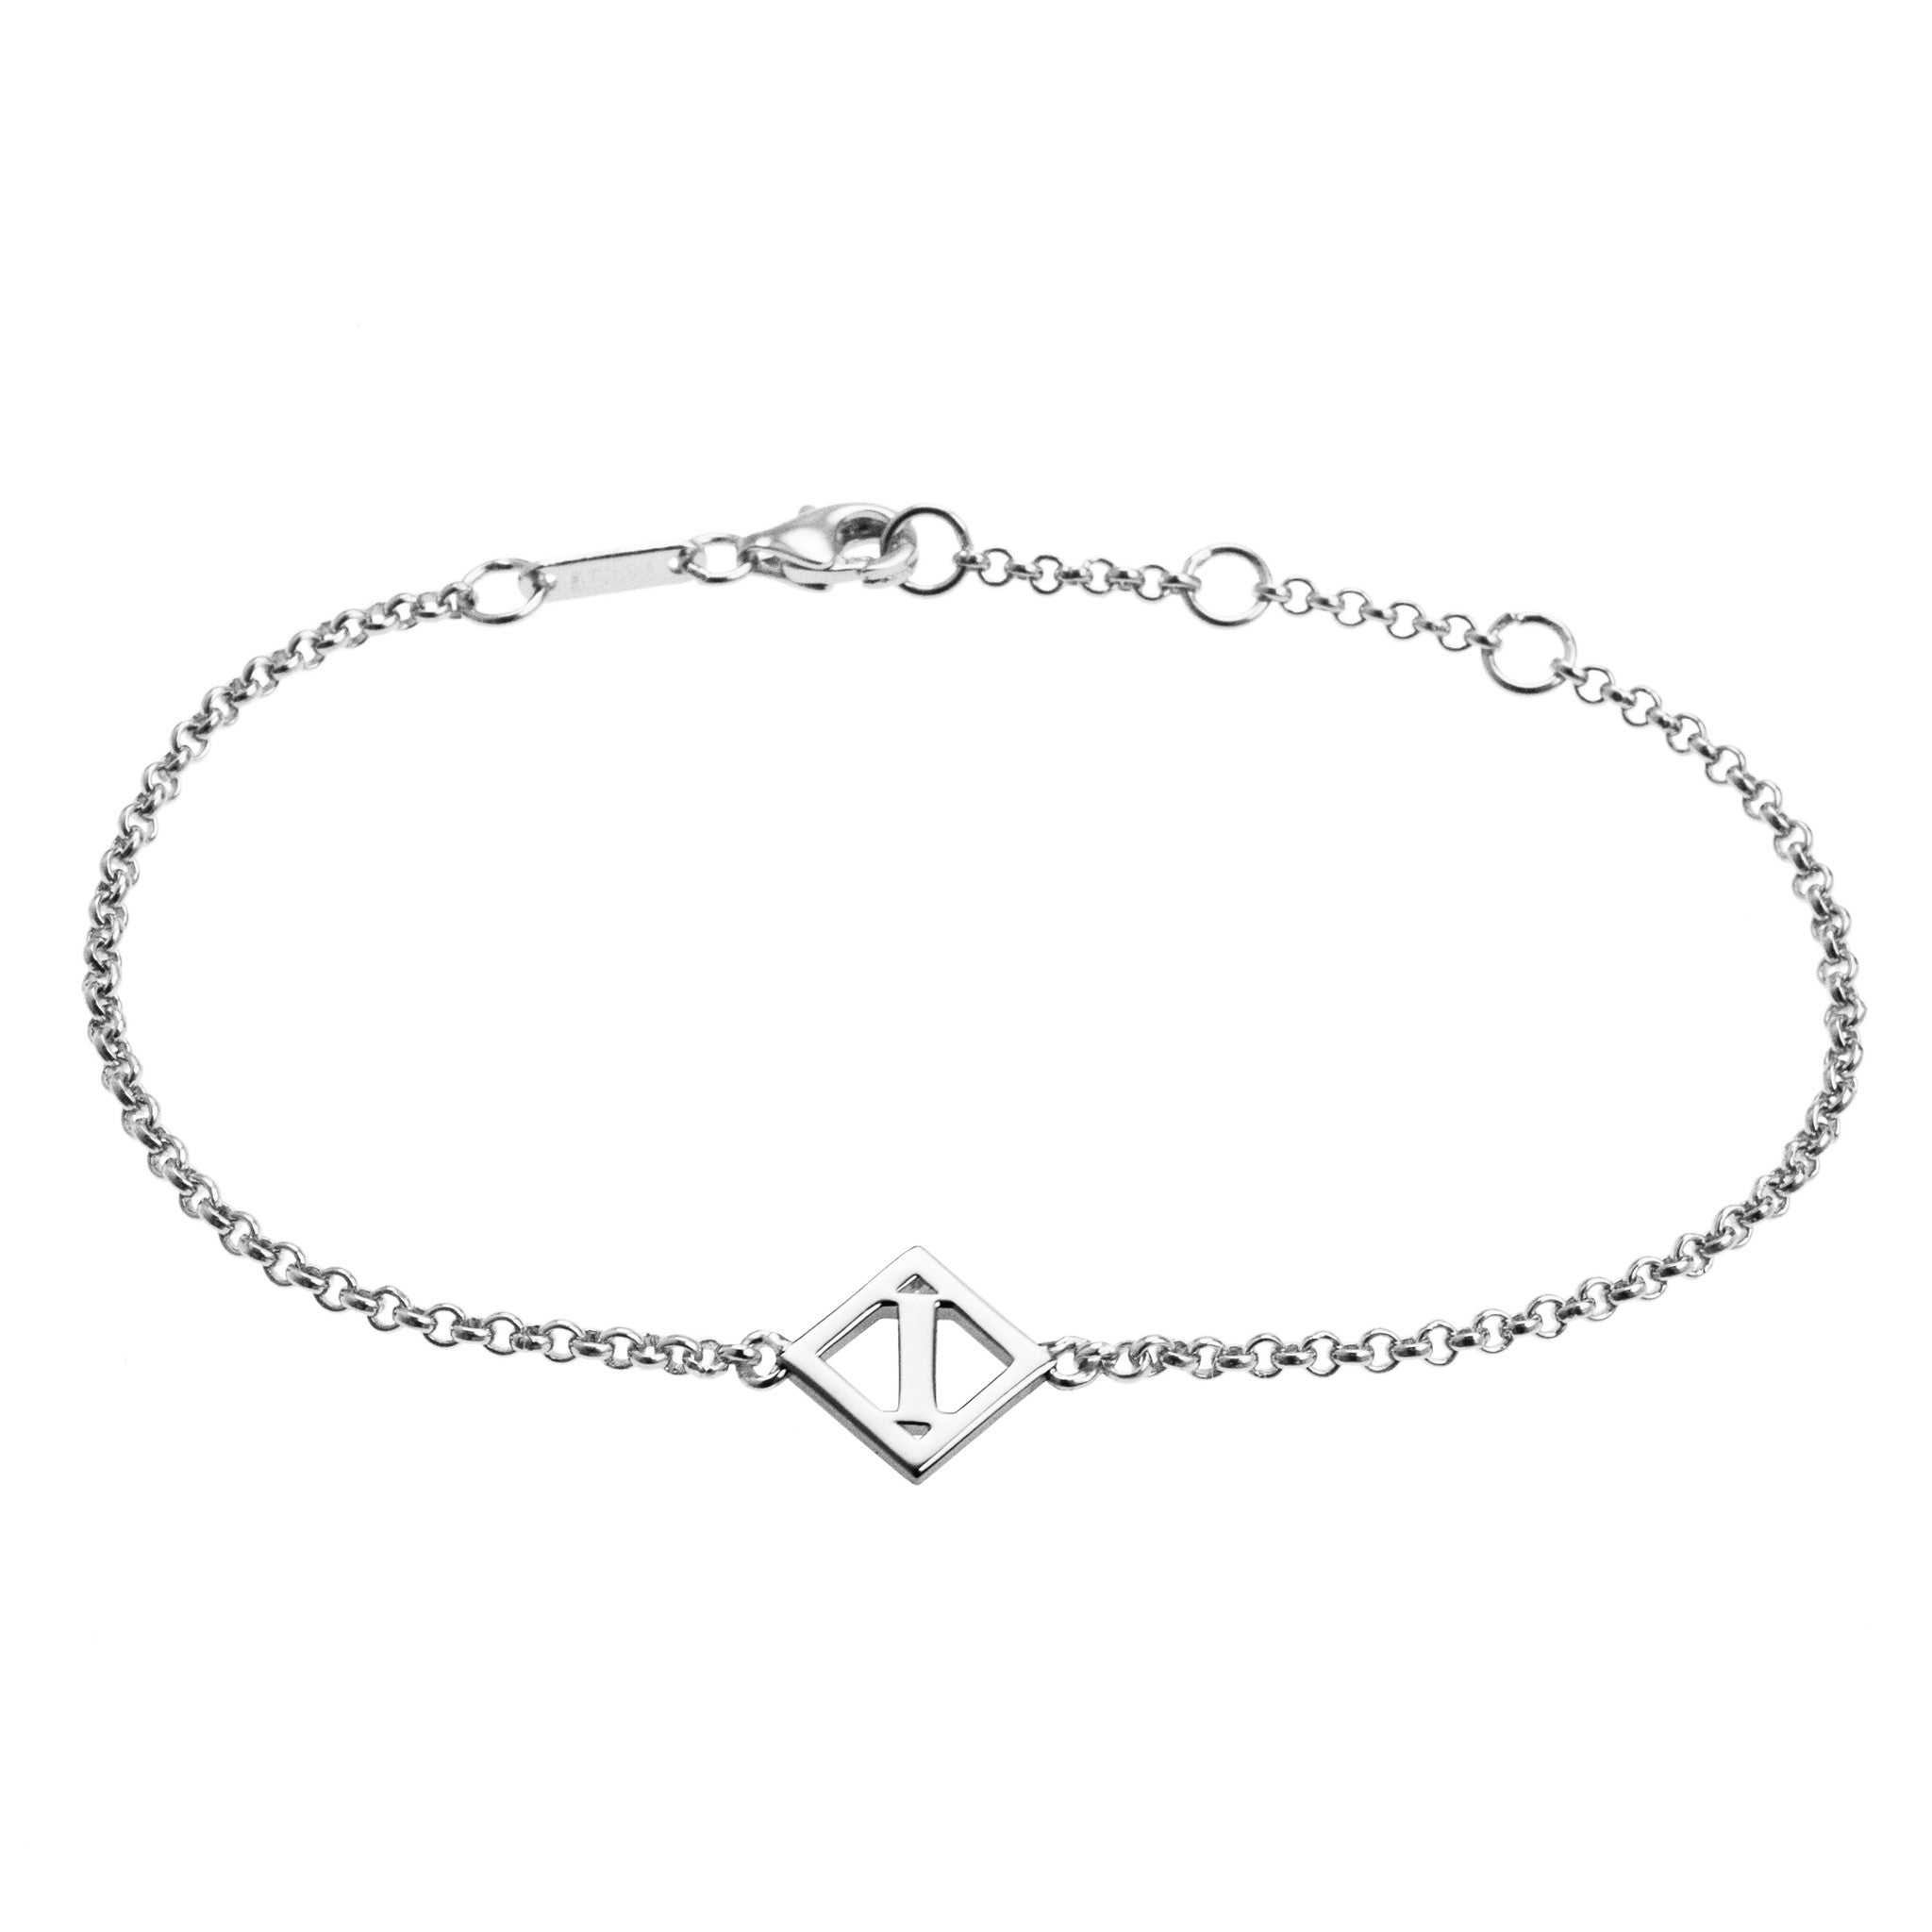 diamond tiny worters product claudetteworters original in silver claudette letter bracelet by